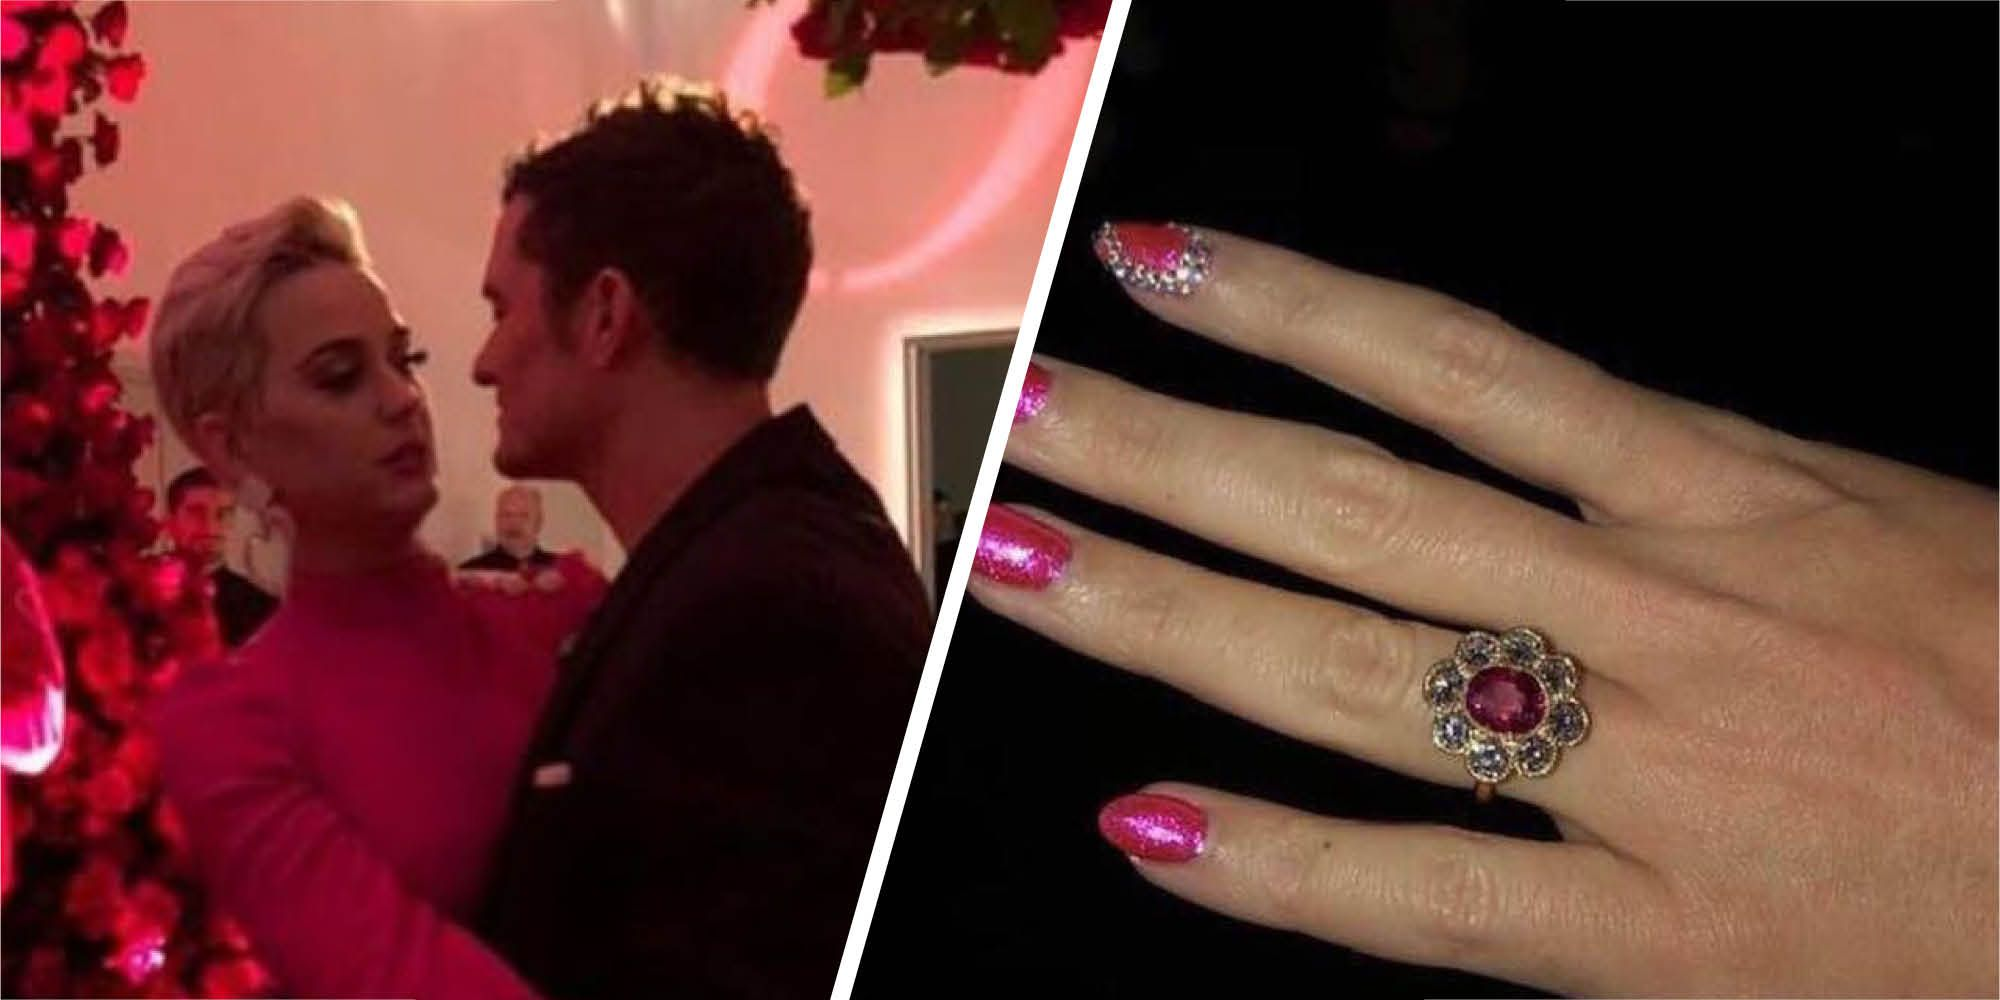 Katy Perry and Orlando Bloom are engaged by the looks of it